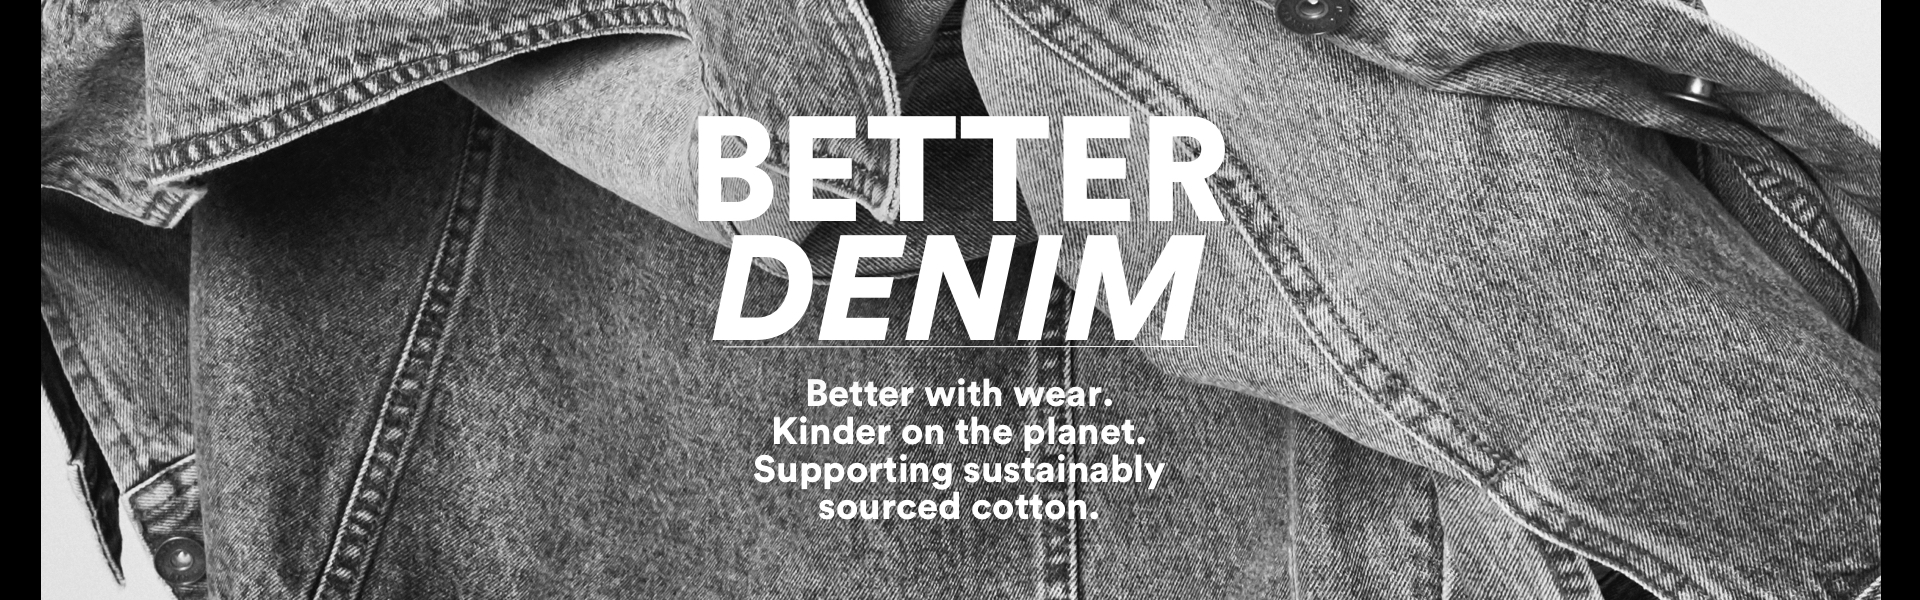 Better Denim. Made from sustainably sourced cotton.